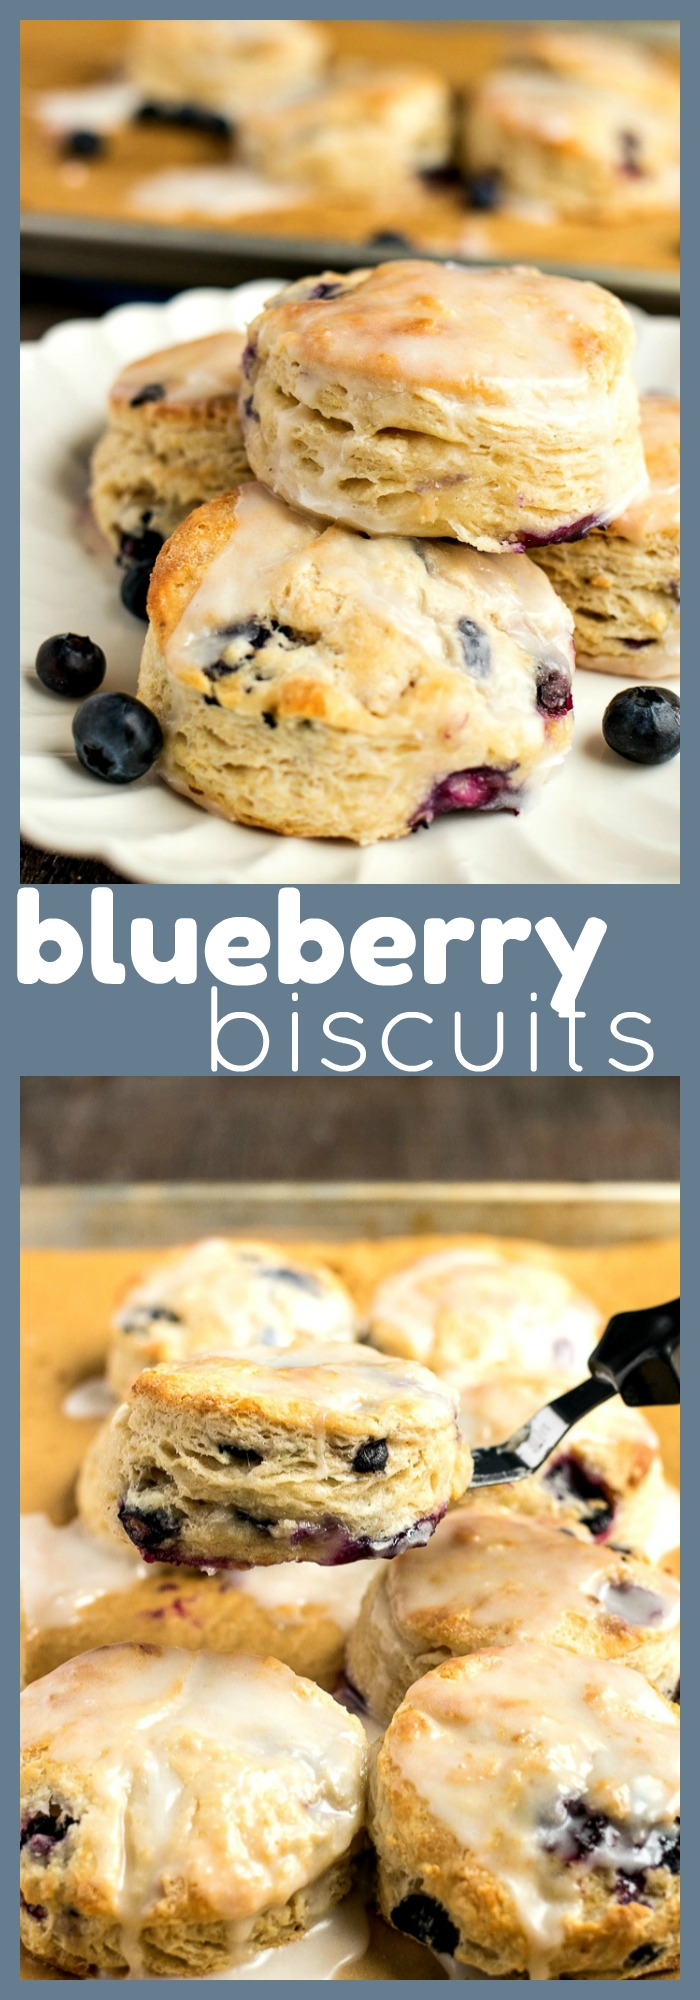 Blueberry Biscuits photo collage